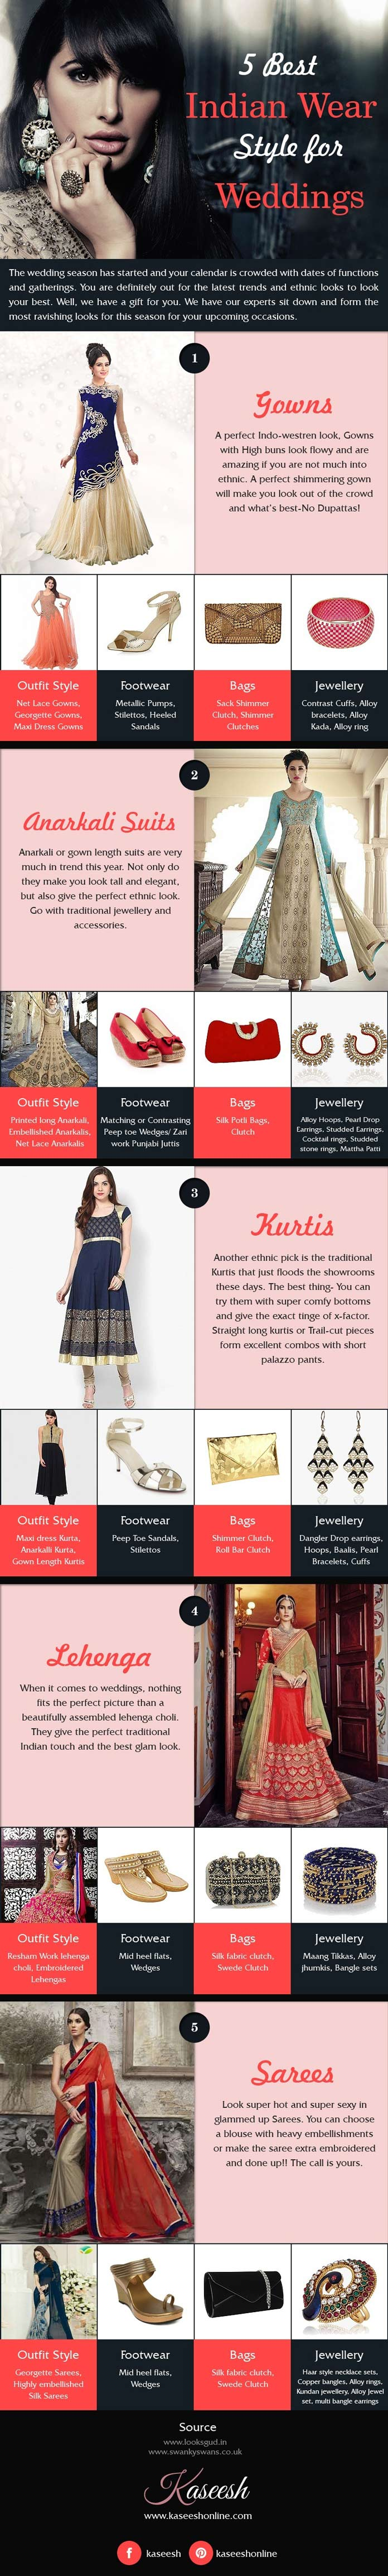 5-Best-Indian-Wear-Style-for-Weddings